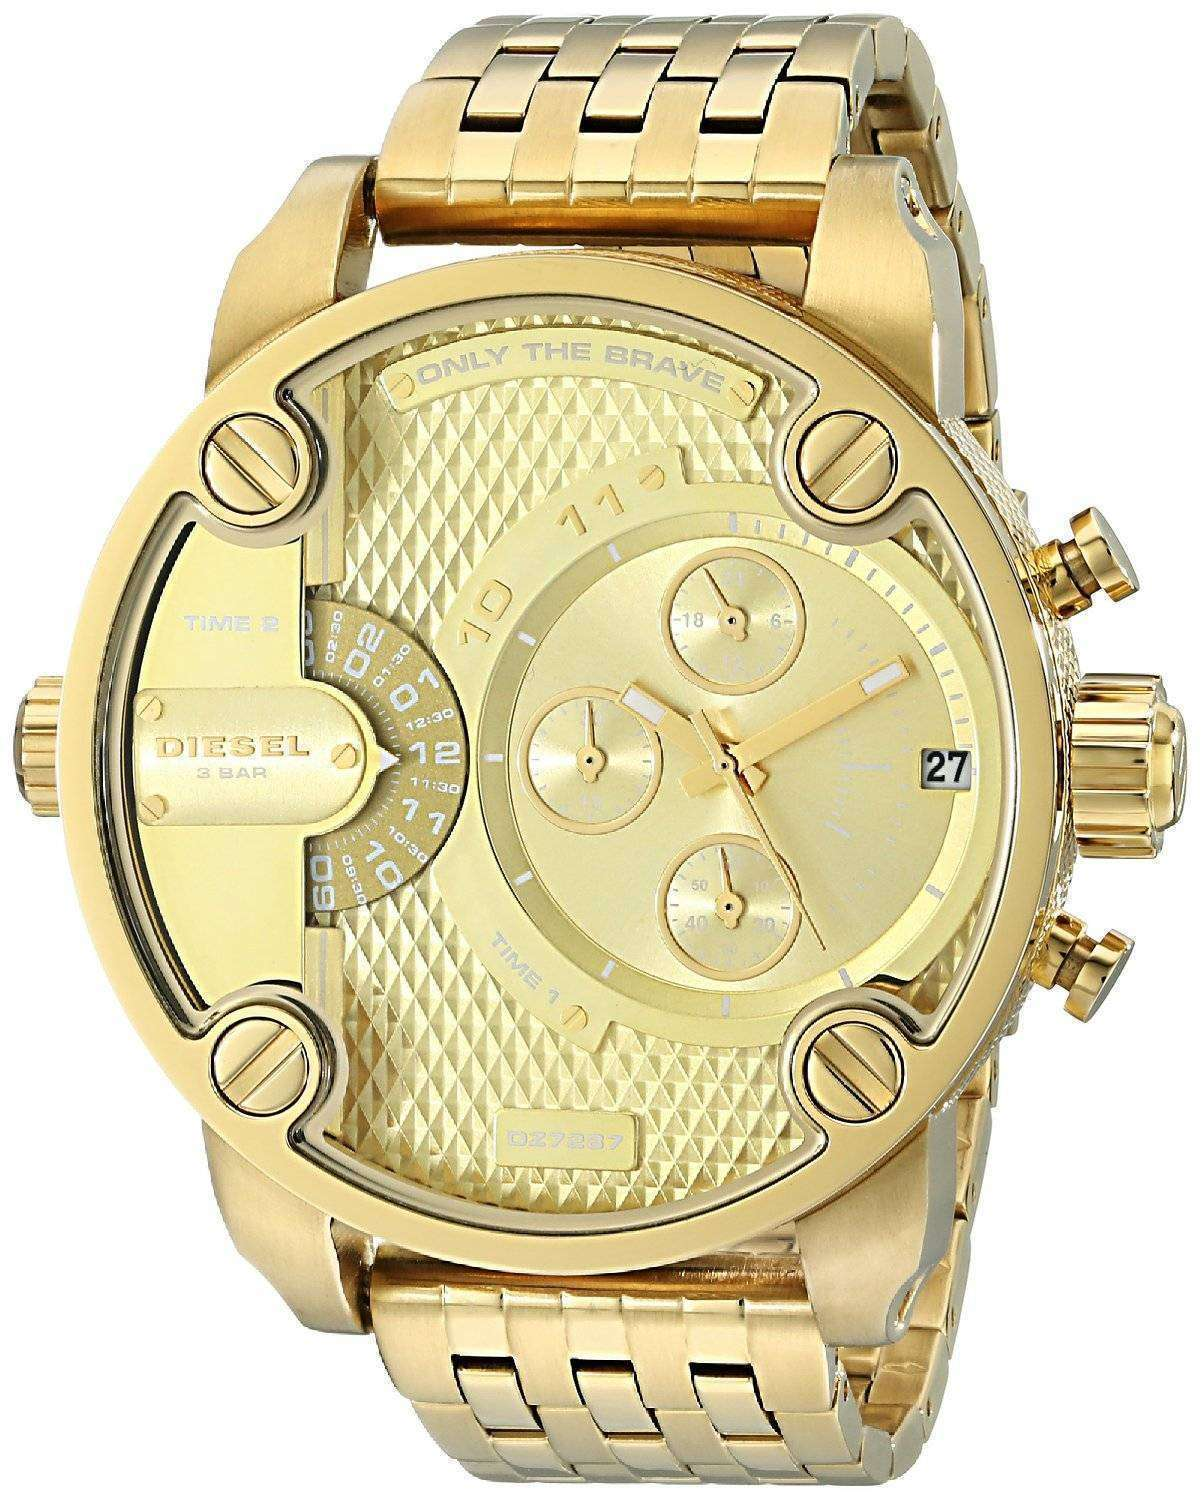 Michael Kors Outlet Store Online Special Offerred Of Authentic And Durable Michael Kors Handbags,Purses,With Huge Discount Price! Collection For discount Luxury Designer KORS Michael Kors handbags,bags,purses,wallets 80% lasourisglobe-trotteuse.tk Fast Shipping And No Tax!